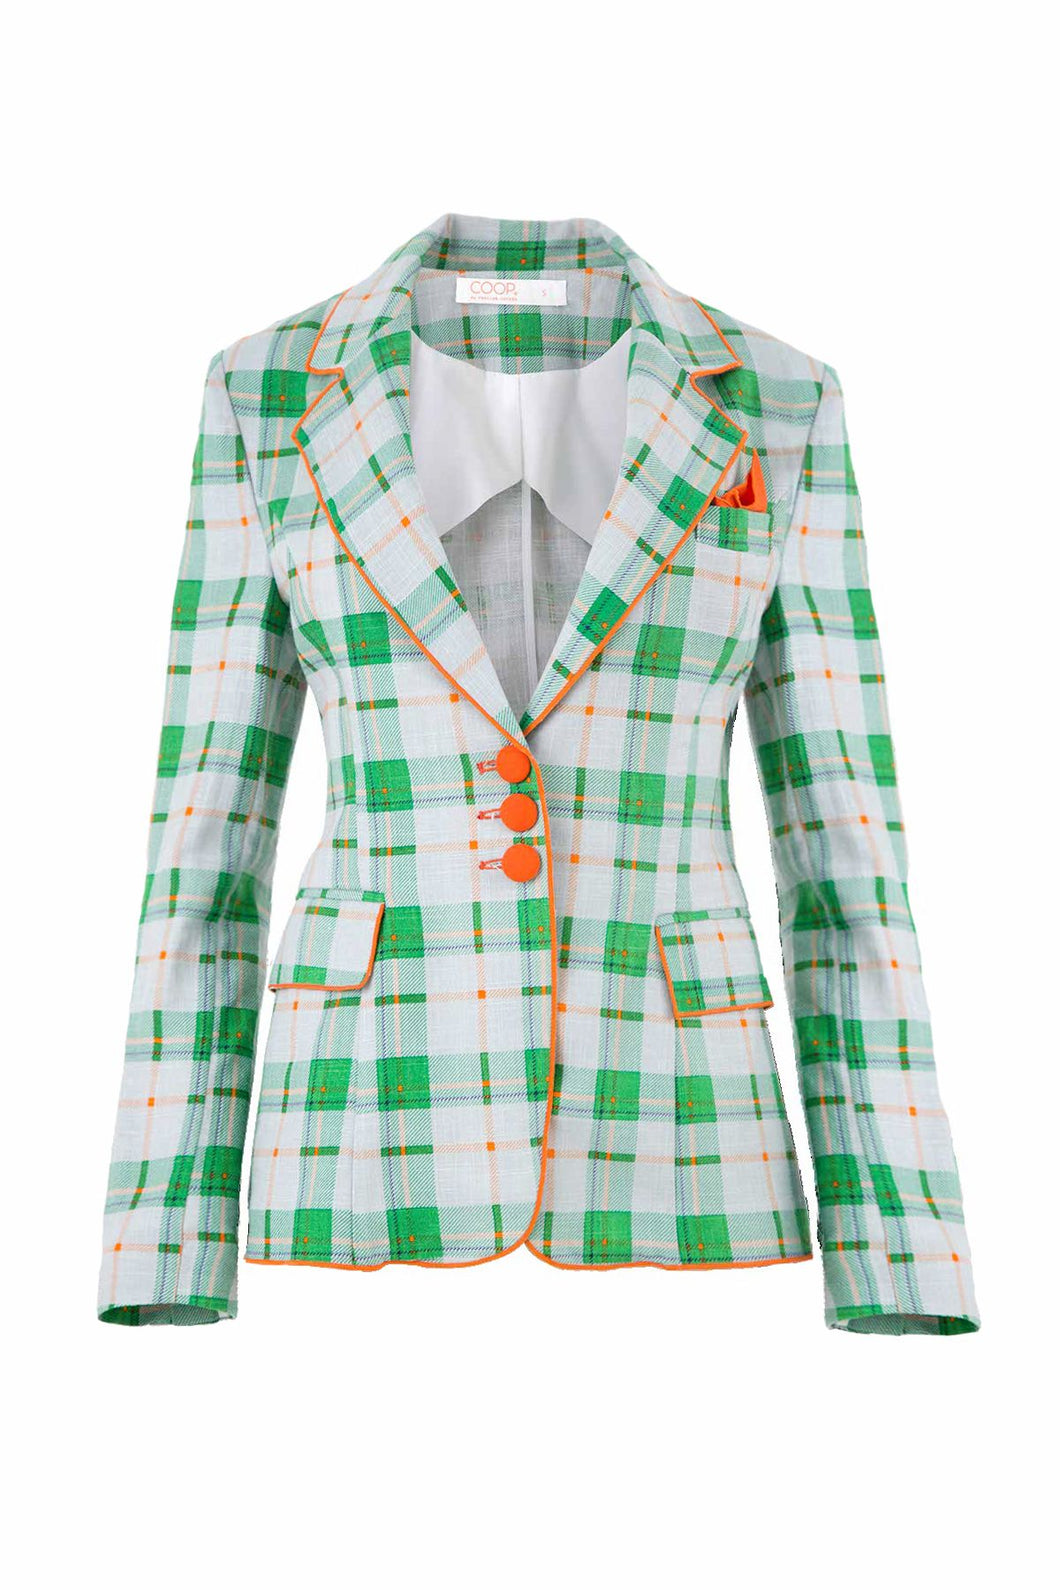 COOP by Trelise Cooper - Blazer Glory jacket - REALITY CHECK